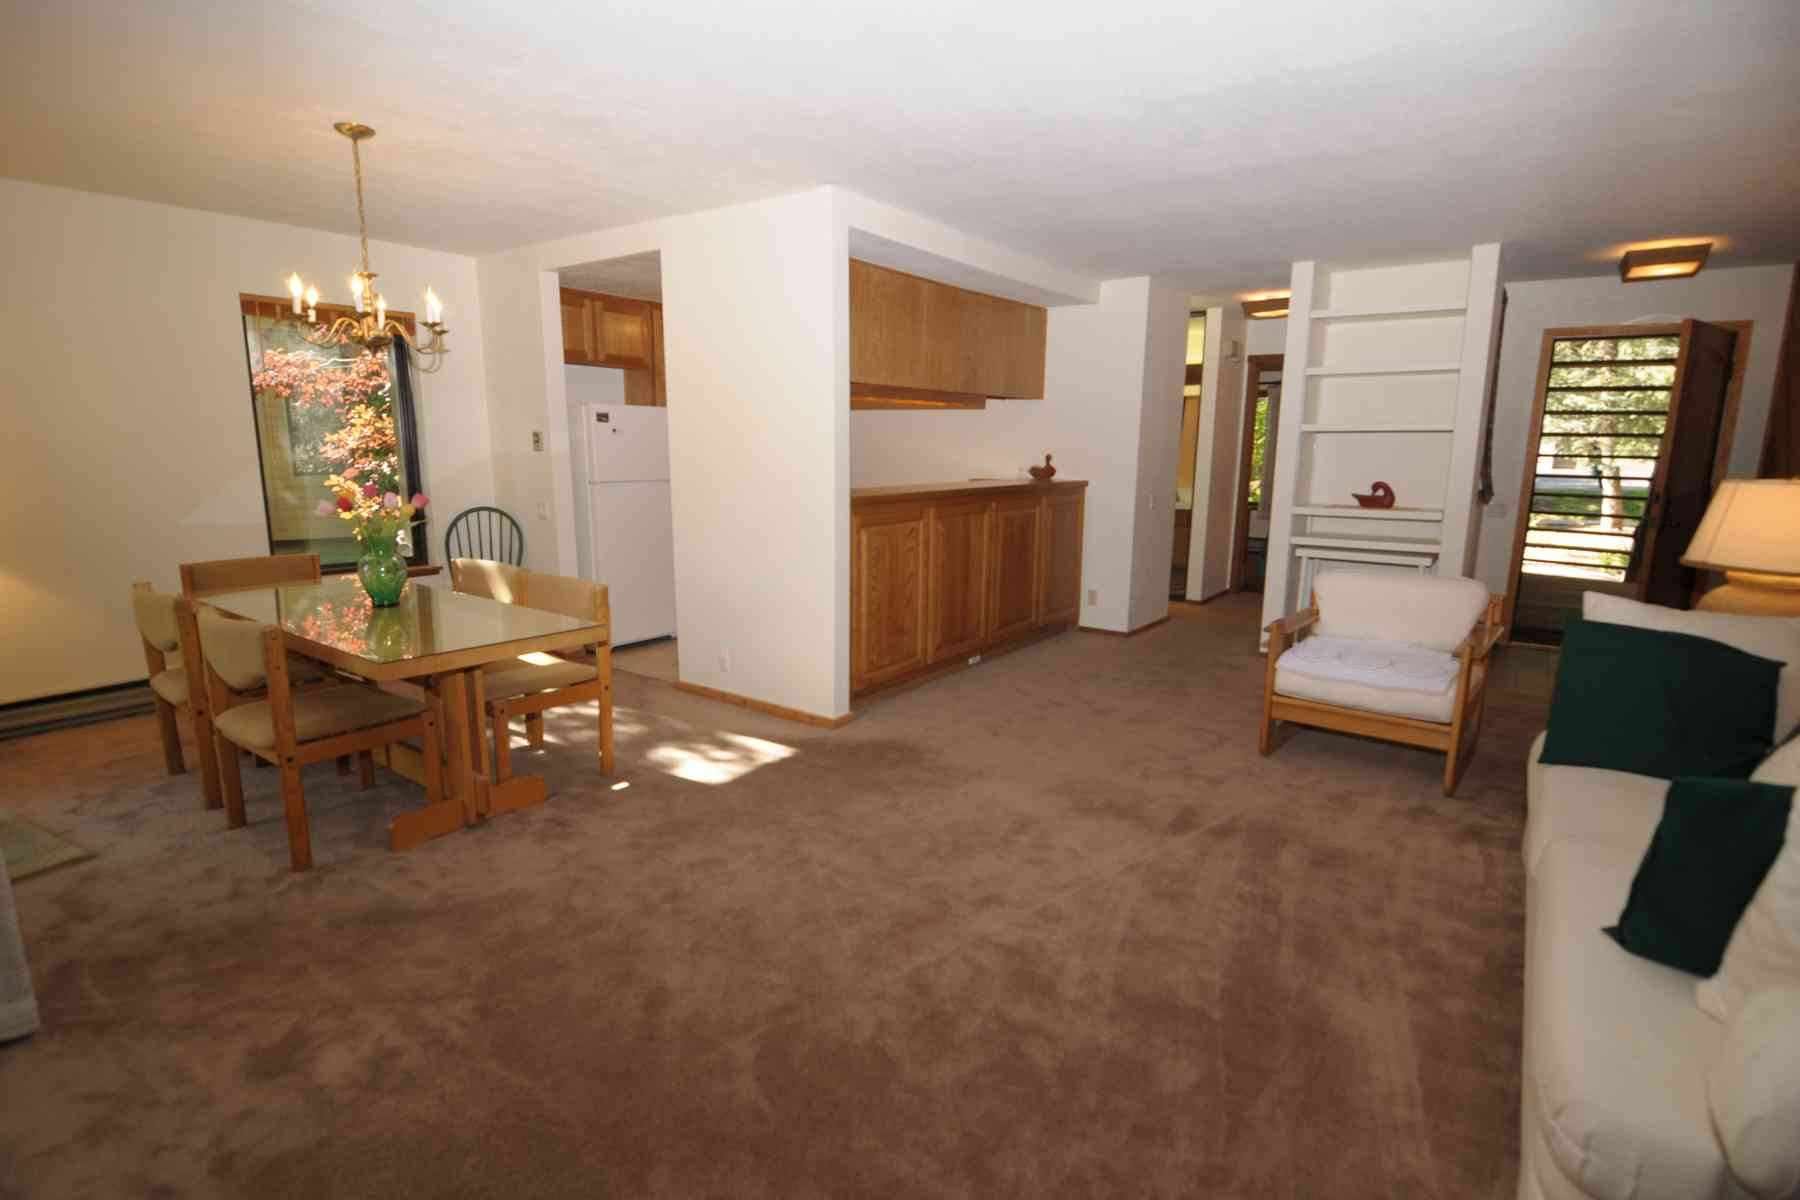 Additional photo for property listing at Sun Valley Affordable 2327 Ridge Lane Sun Valley, Idaho 83353 United States